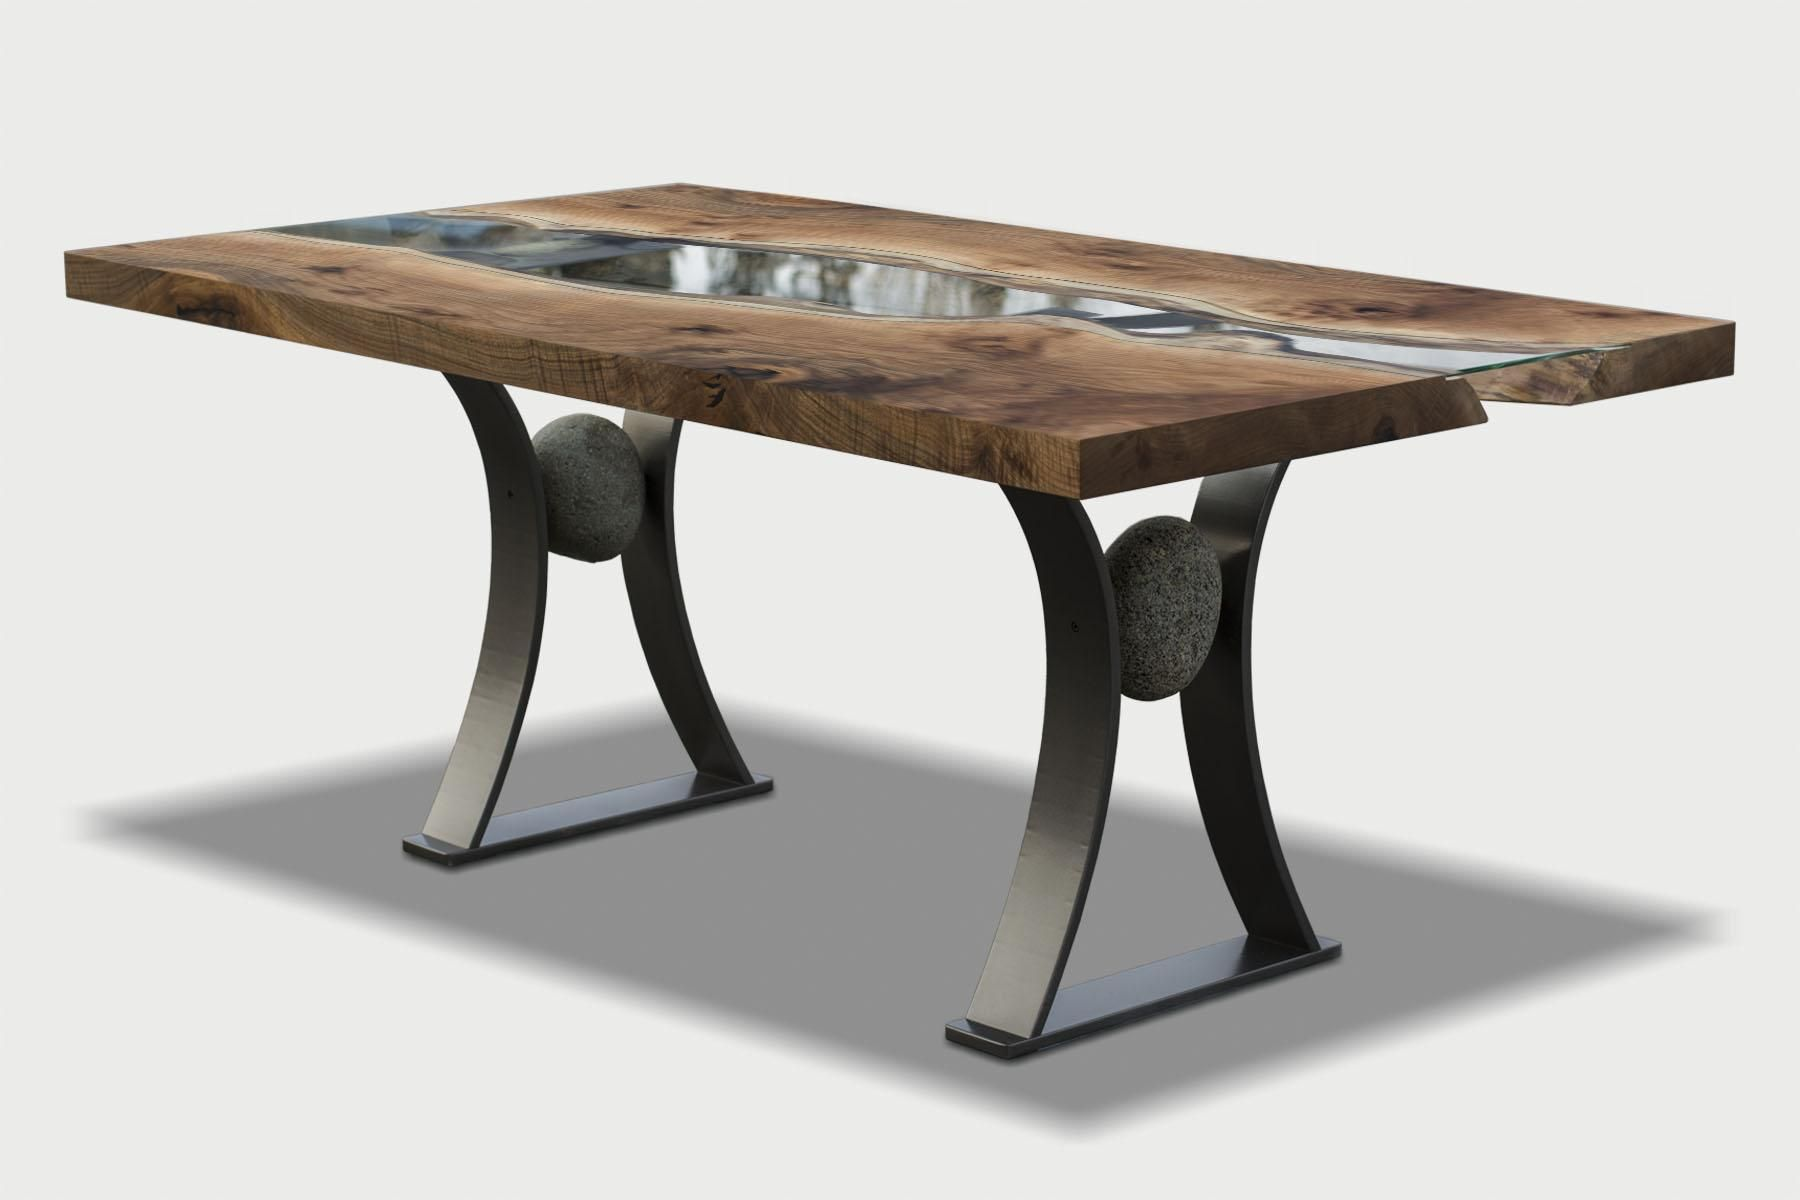 River Run Dining Table Live Edge Slabs Of Solid Walnut